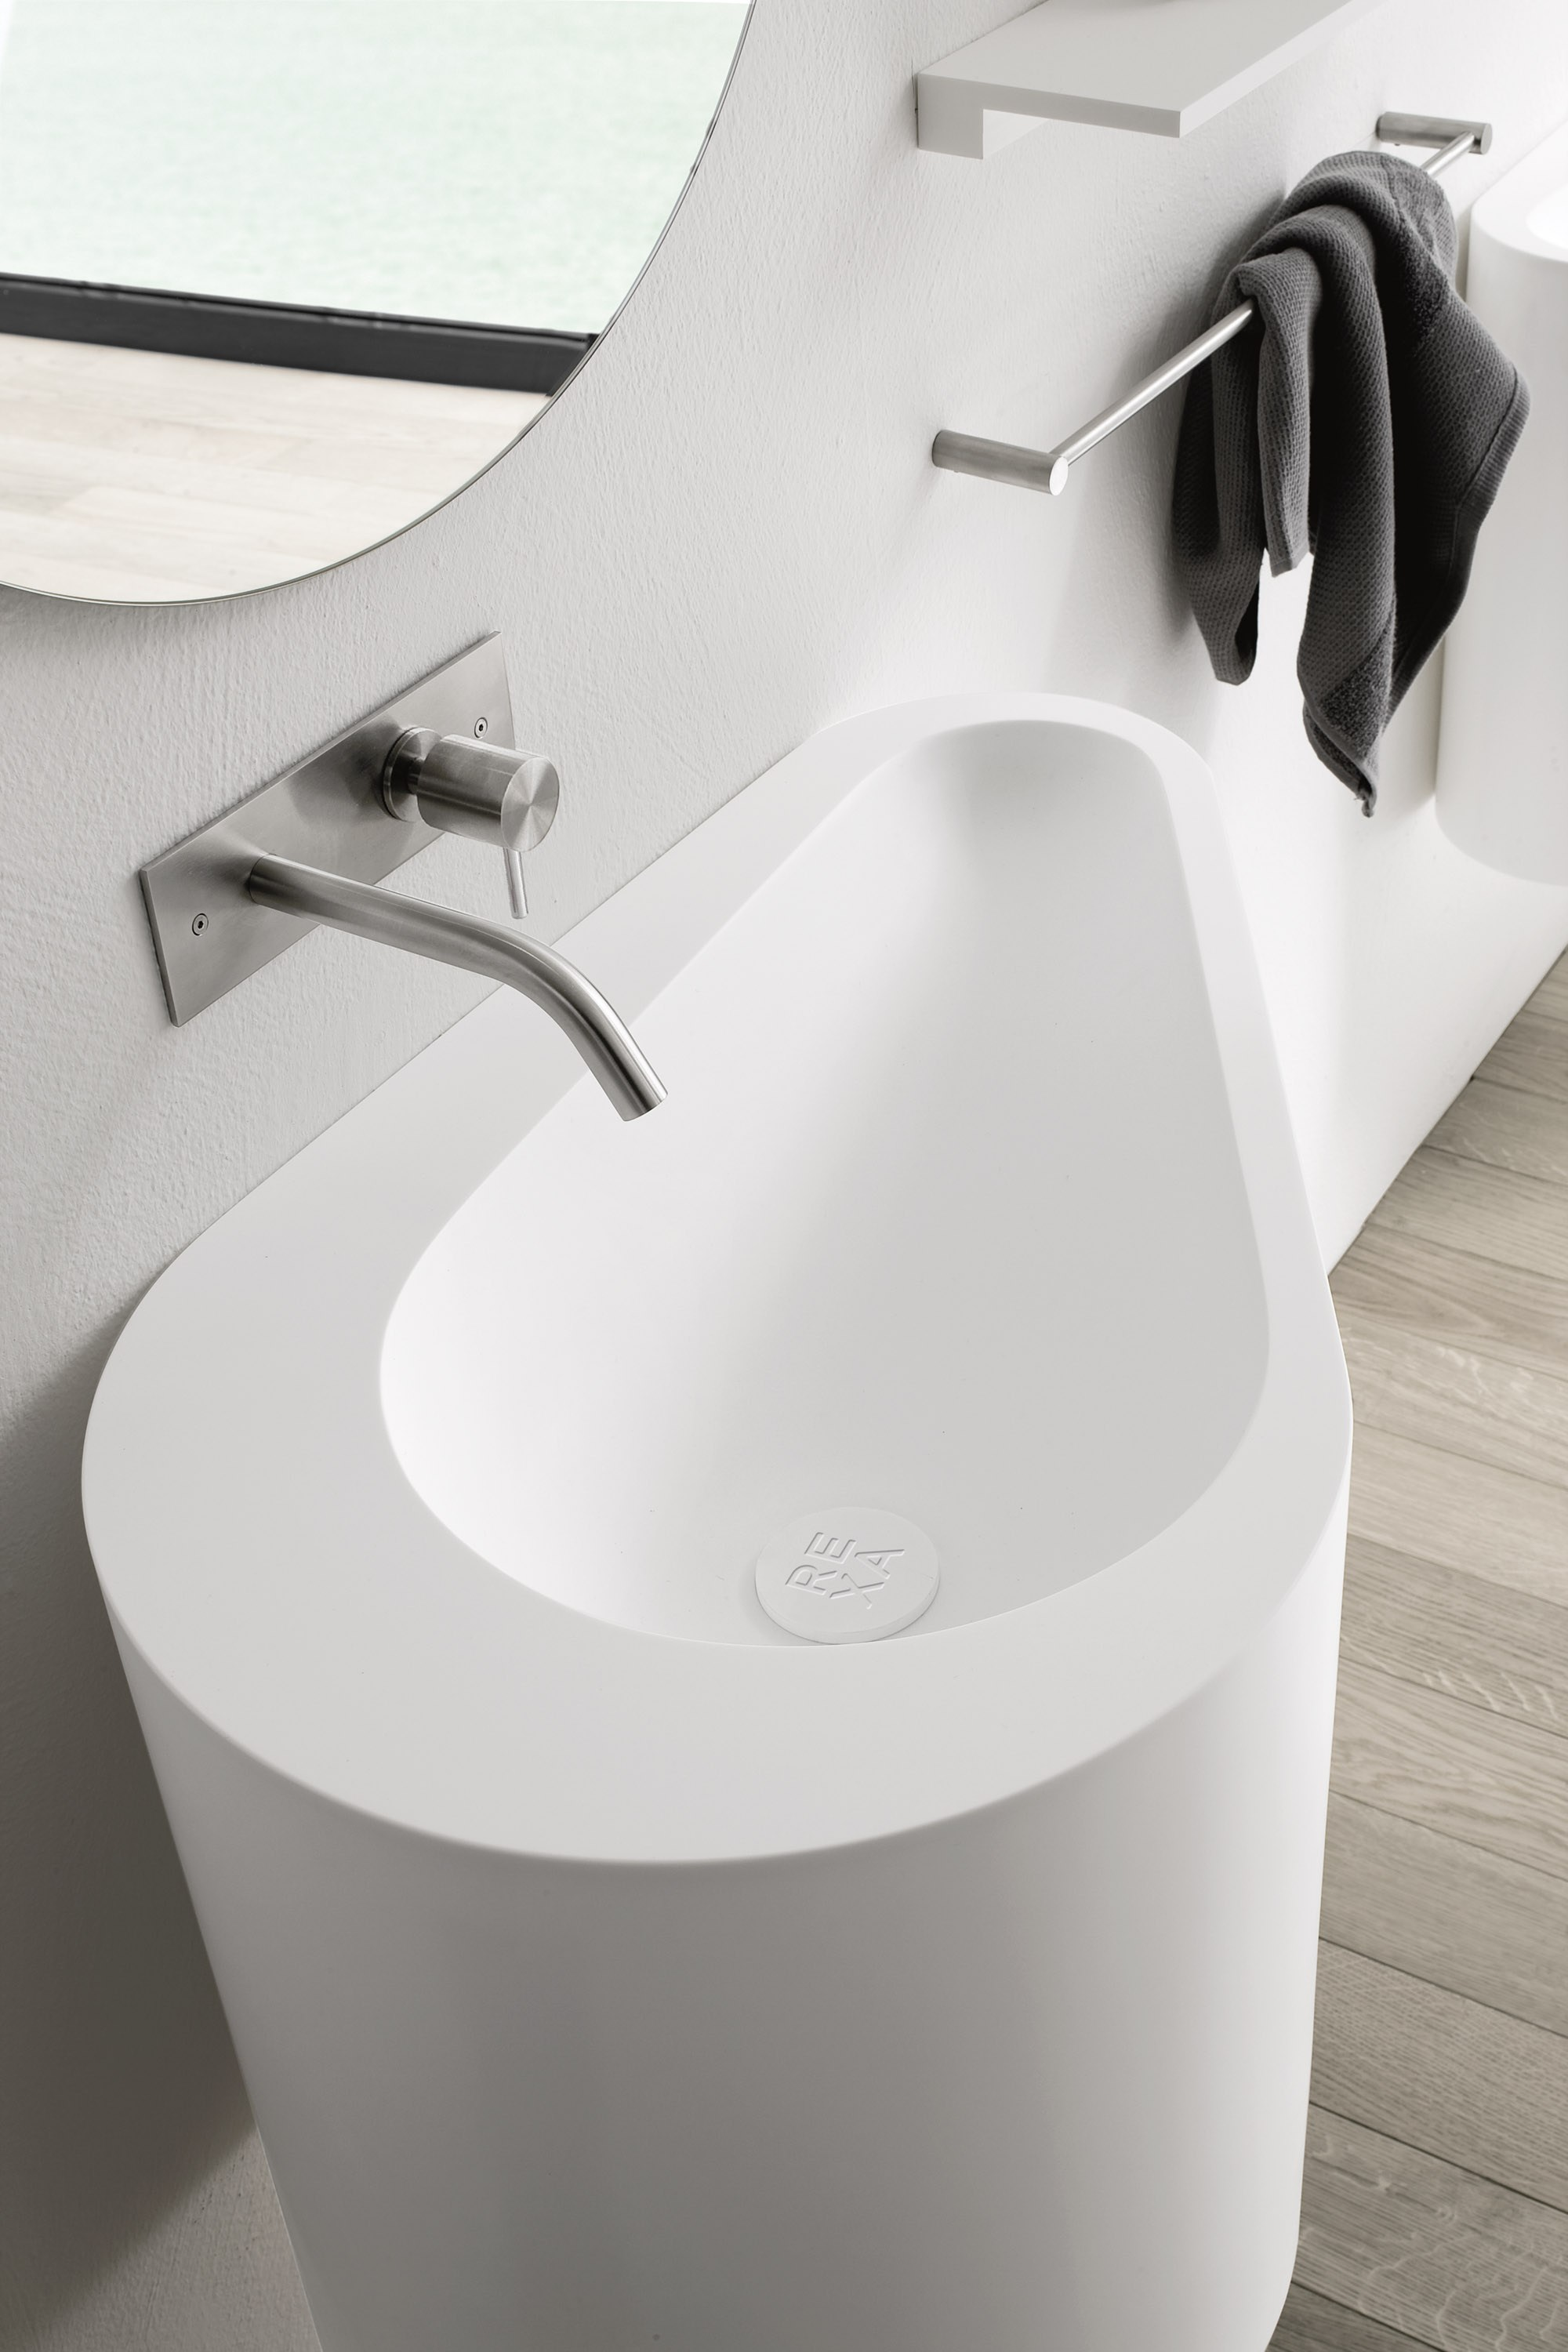 Rubinetto per lavabo a muro collezione brezza by rexa design design rexa design studio for Lavabo design